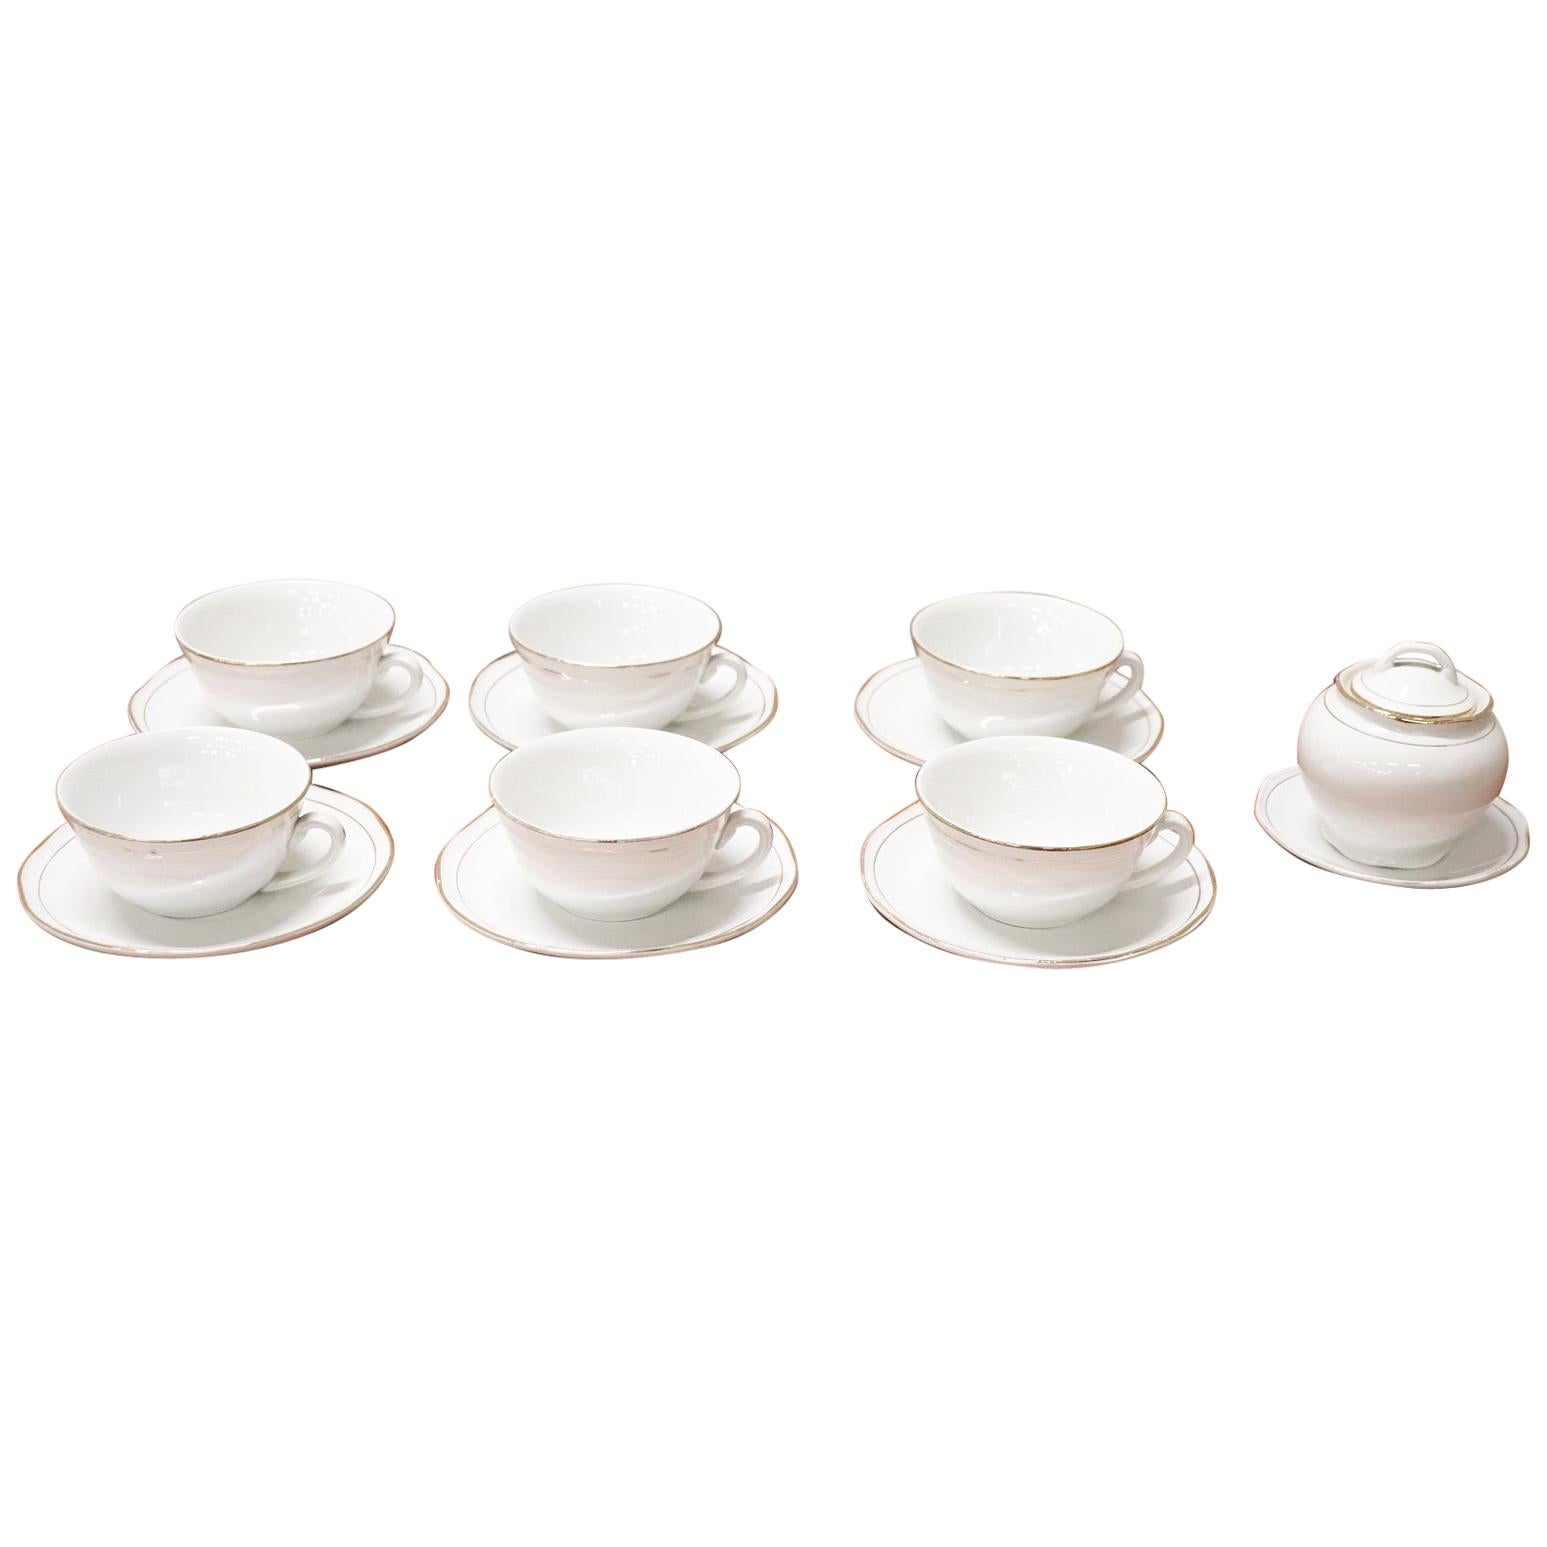 Italian White and Gold Ceramic Coffee and Tea Set by Laveno 15 Pieces